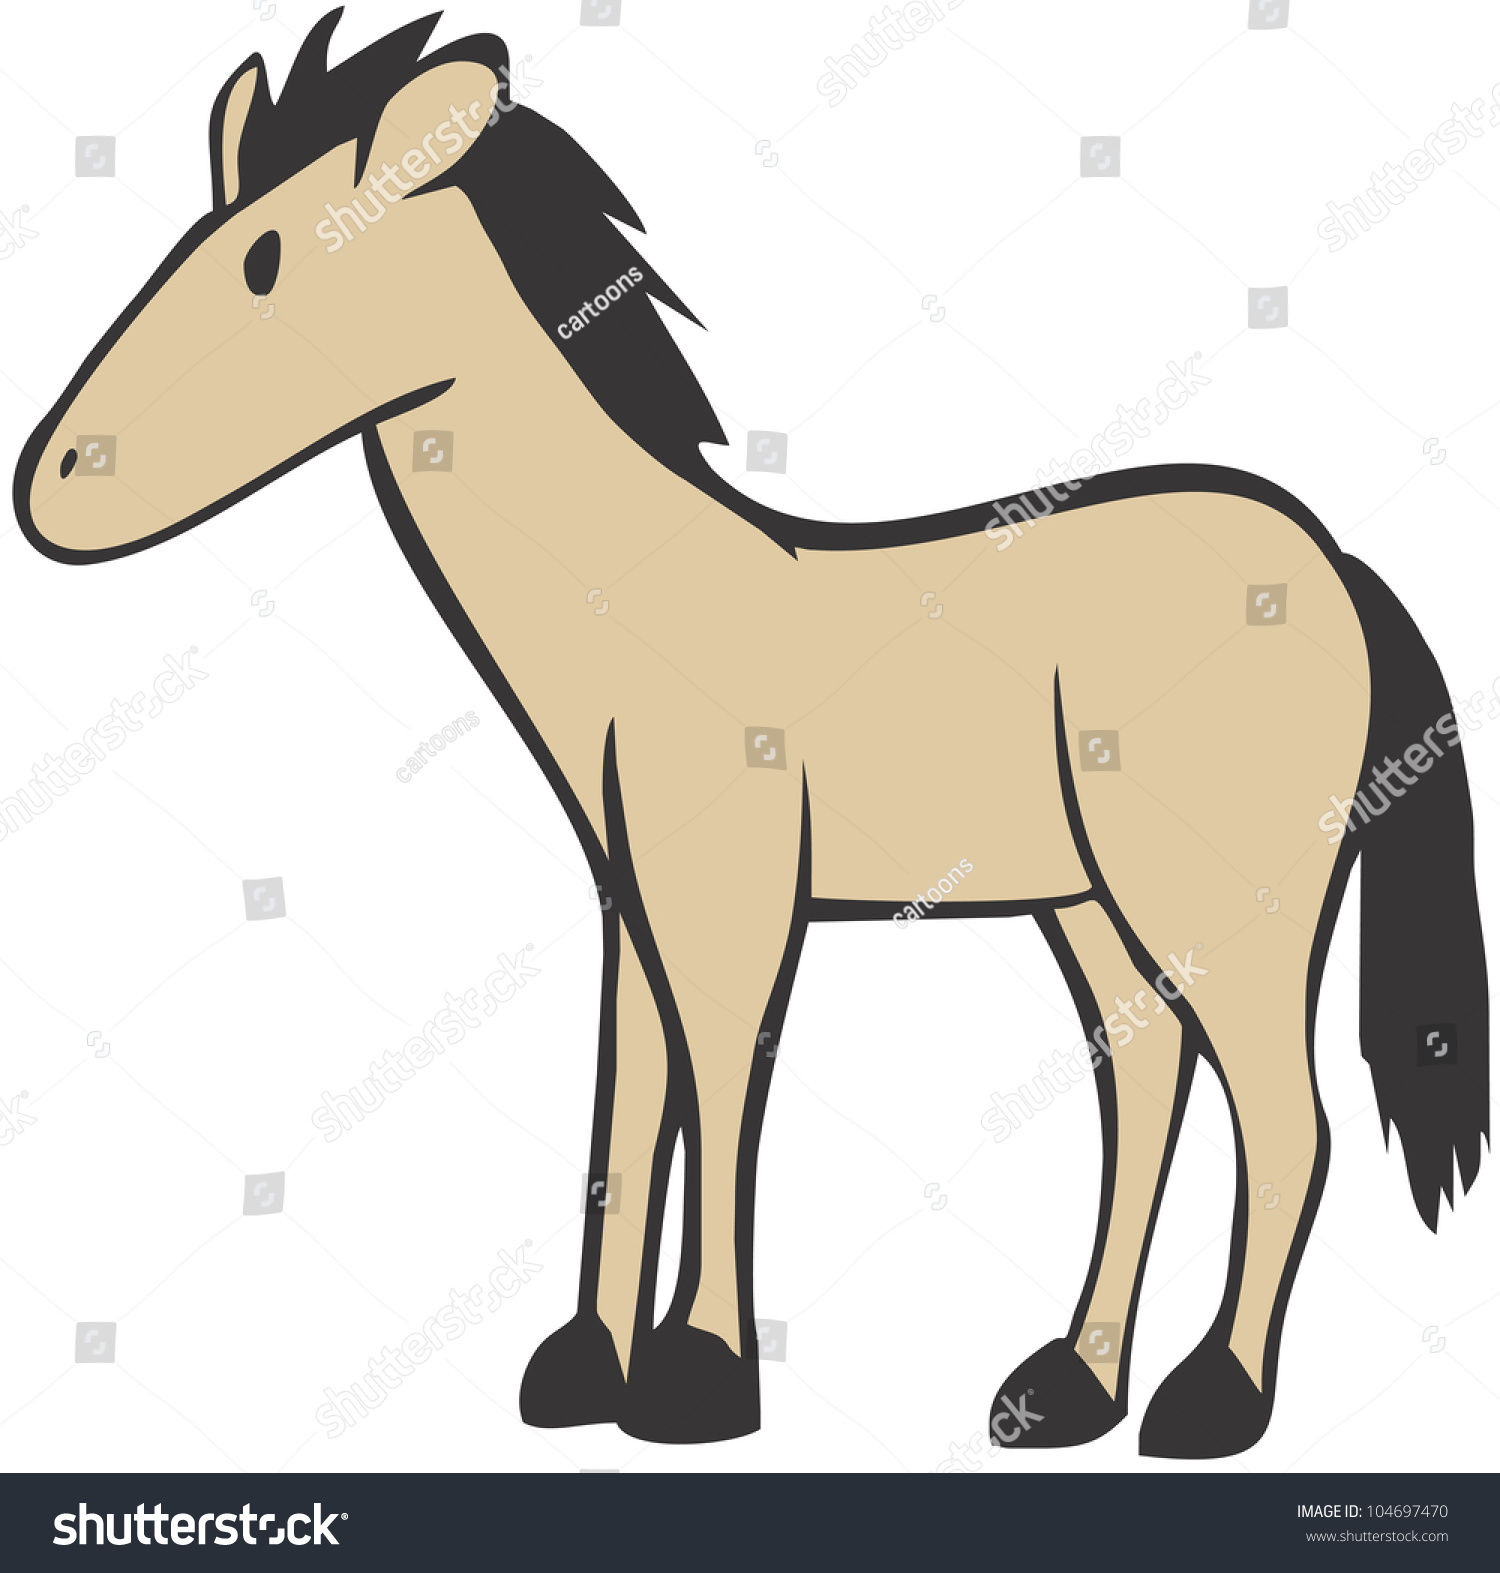 Simple Cute Horse Illustration Stock Vector HD (Royalty Free ...